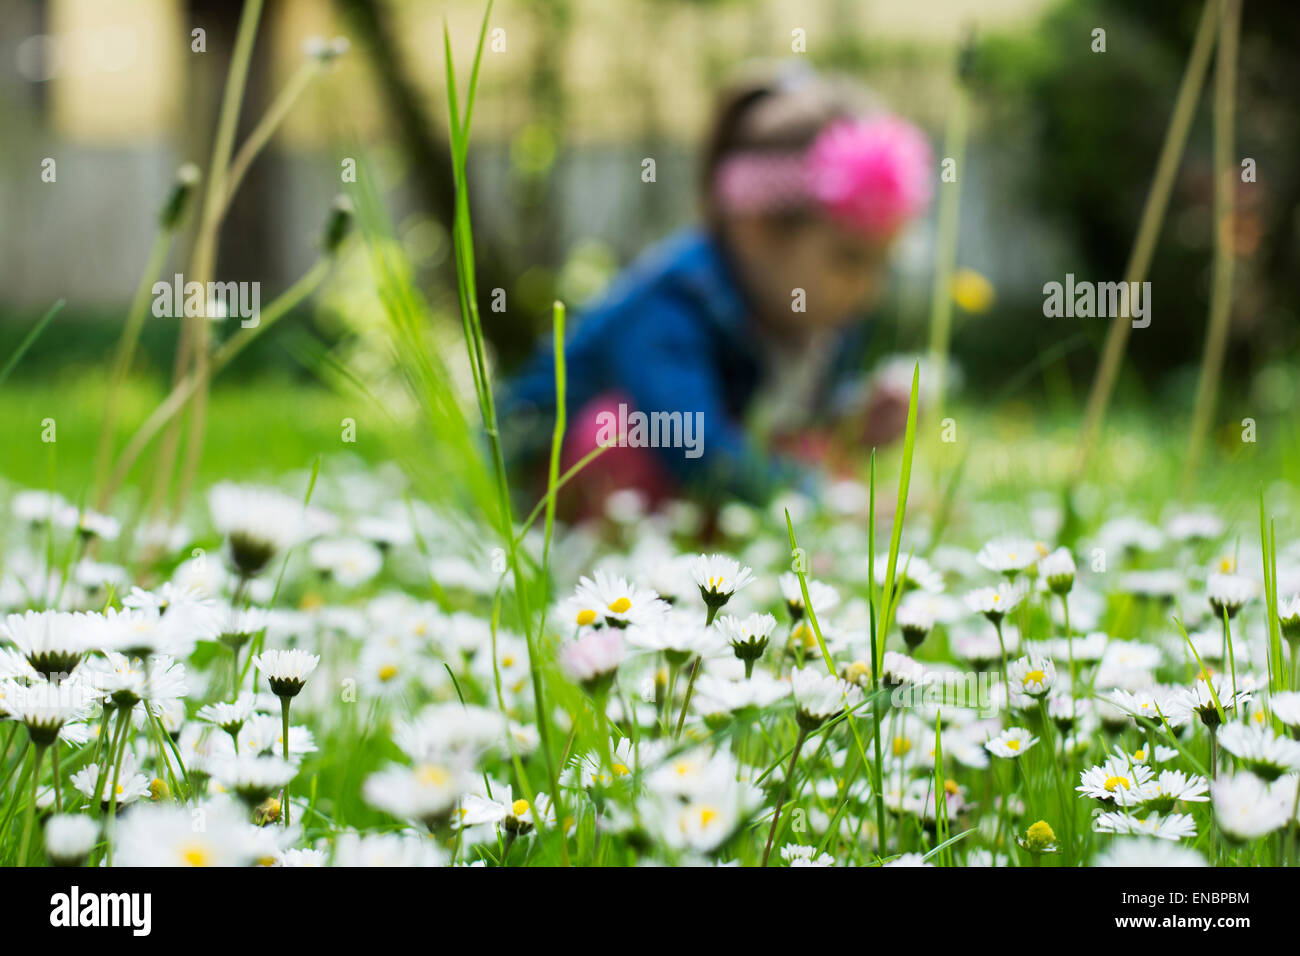 Lots of tiny white flowers blooming in the grass while little girl lots of tiny white flowers blooming in the grass while little girl is picking them dhlflorist Image collections